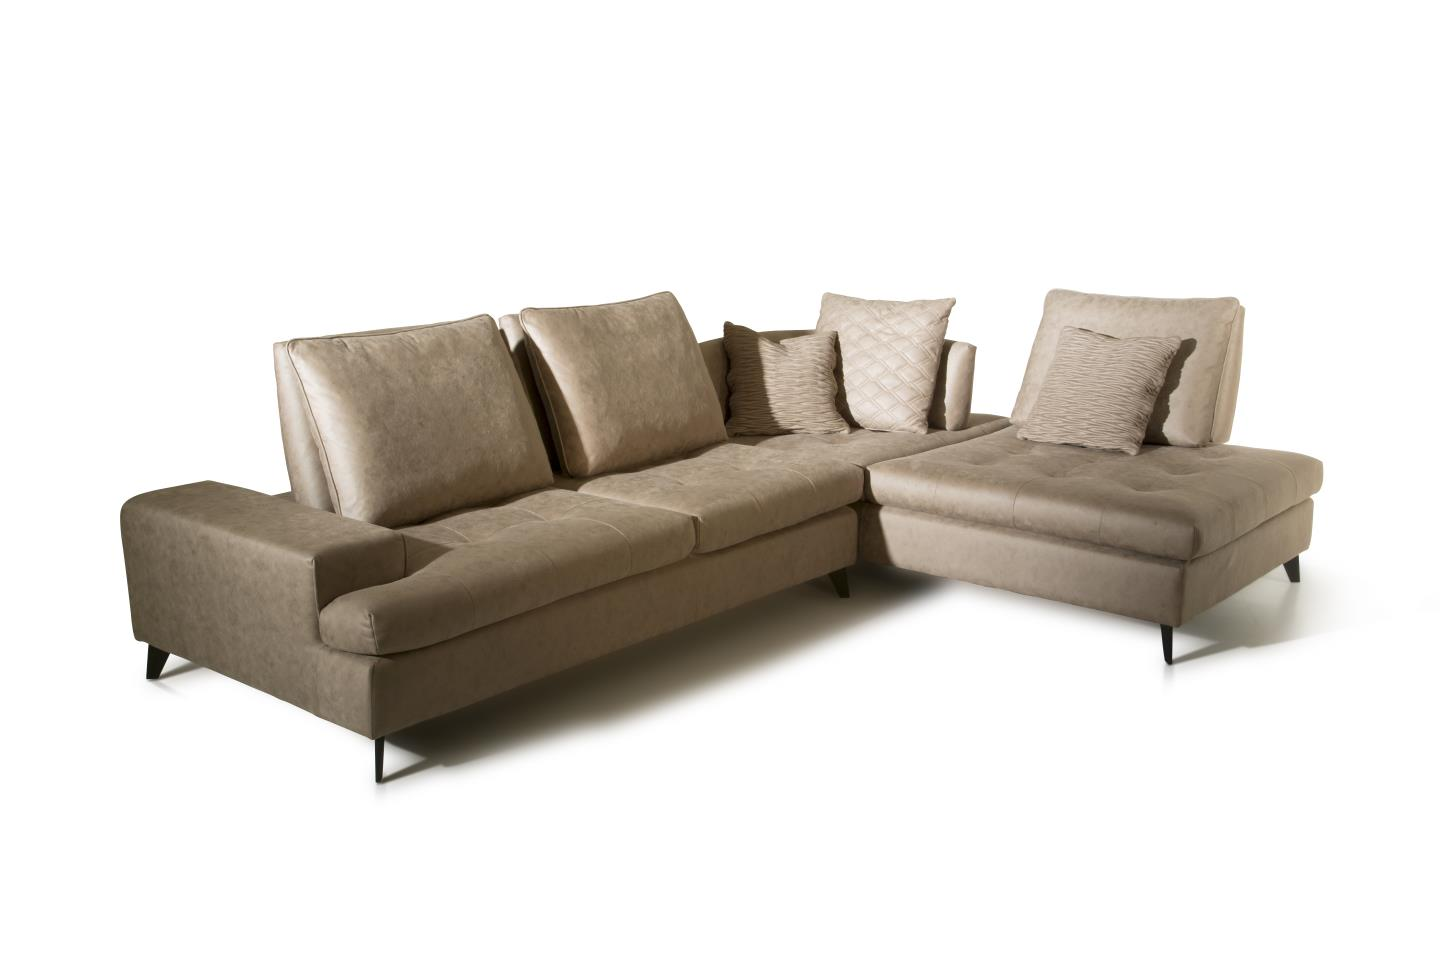 modern twine curved arm sofa cheap packages uk manufacturer new design back contemporary